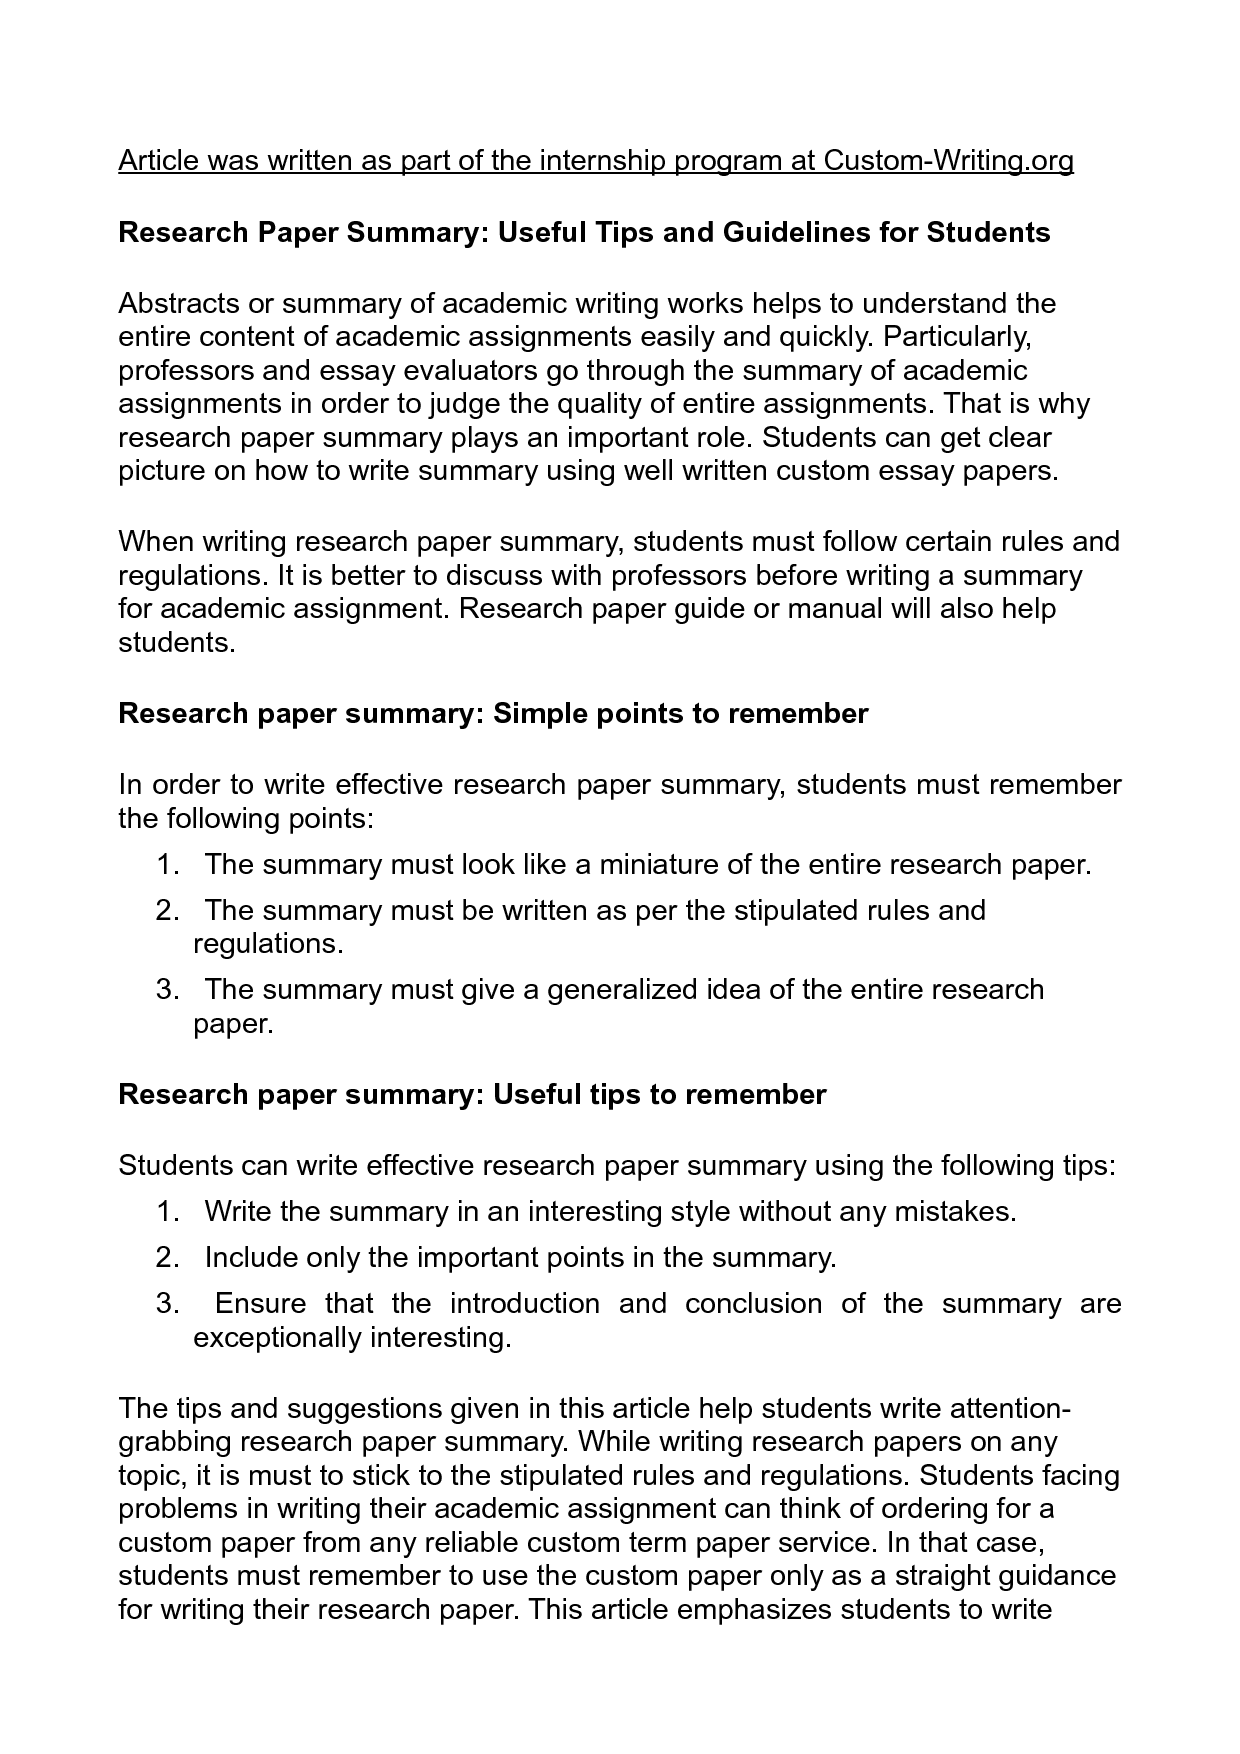 006 Essay Example Adhd Research Papers Brain Scan College About Writing Paper Summary 5 Impressive Argumentative Topics Full